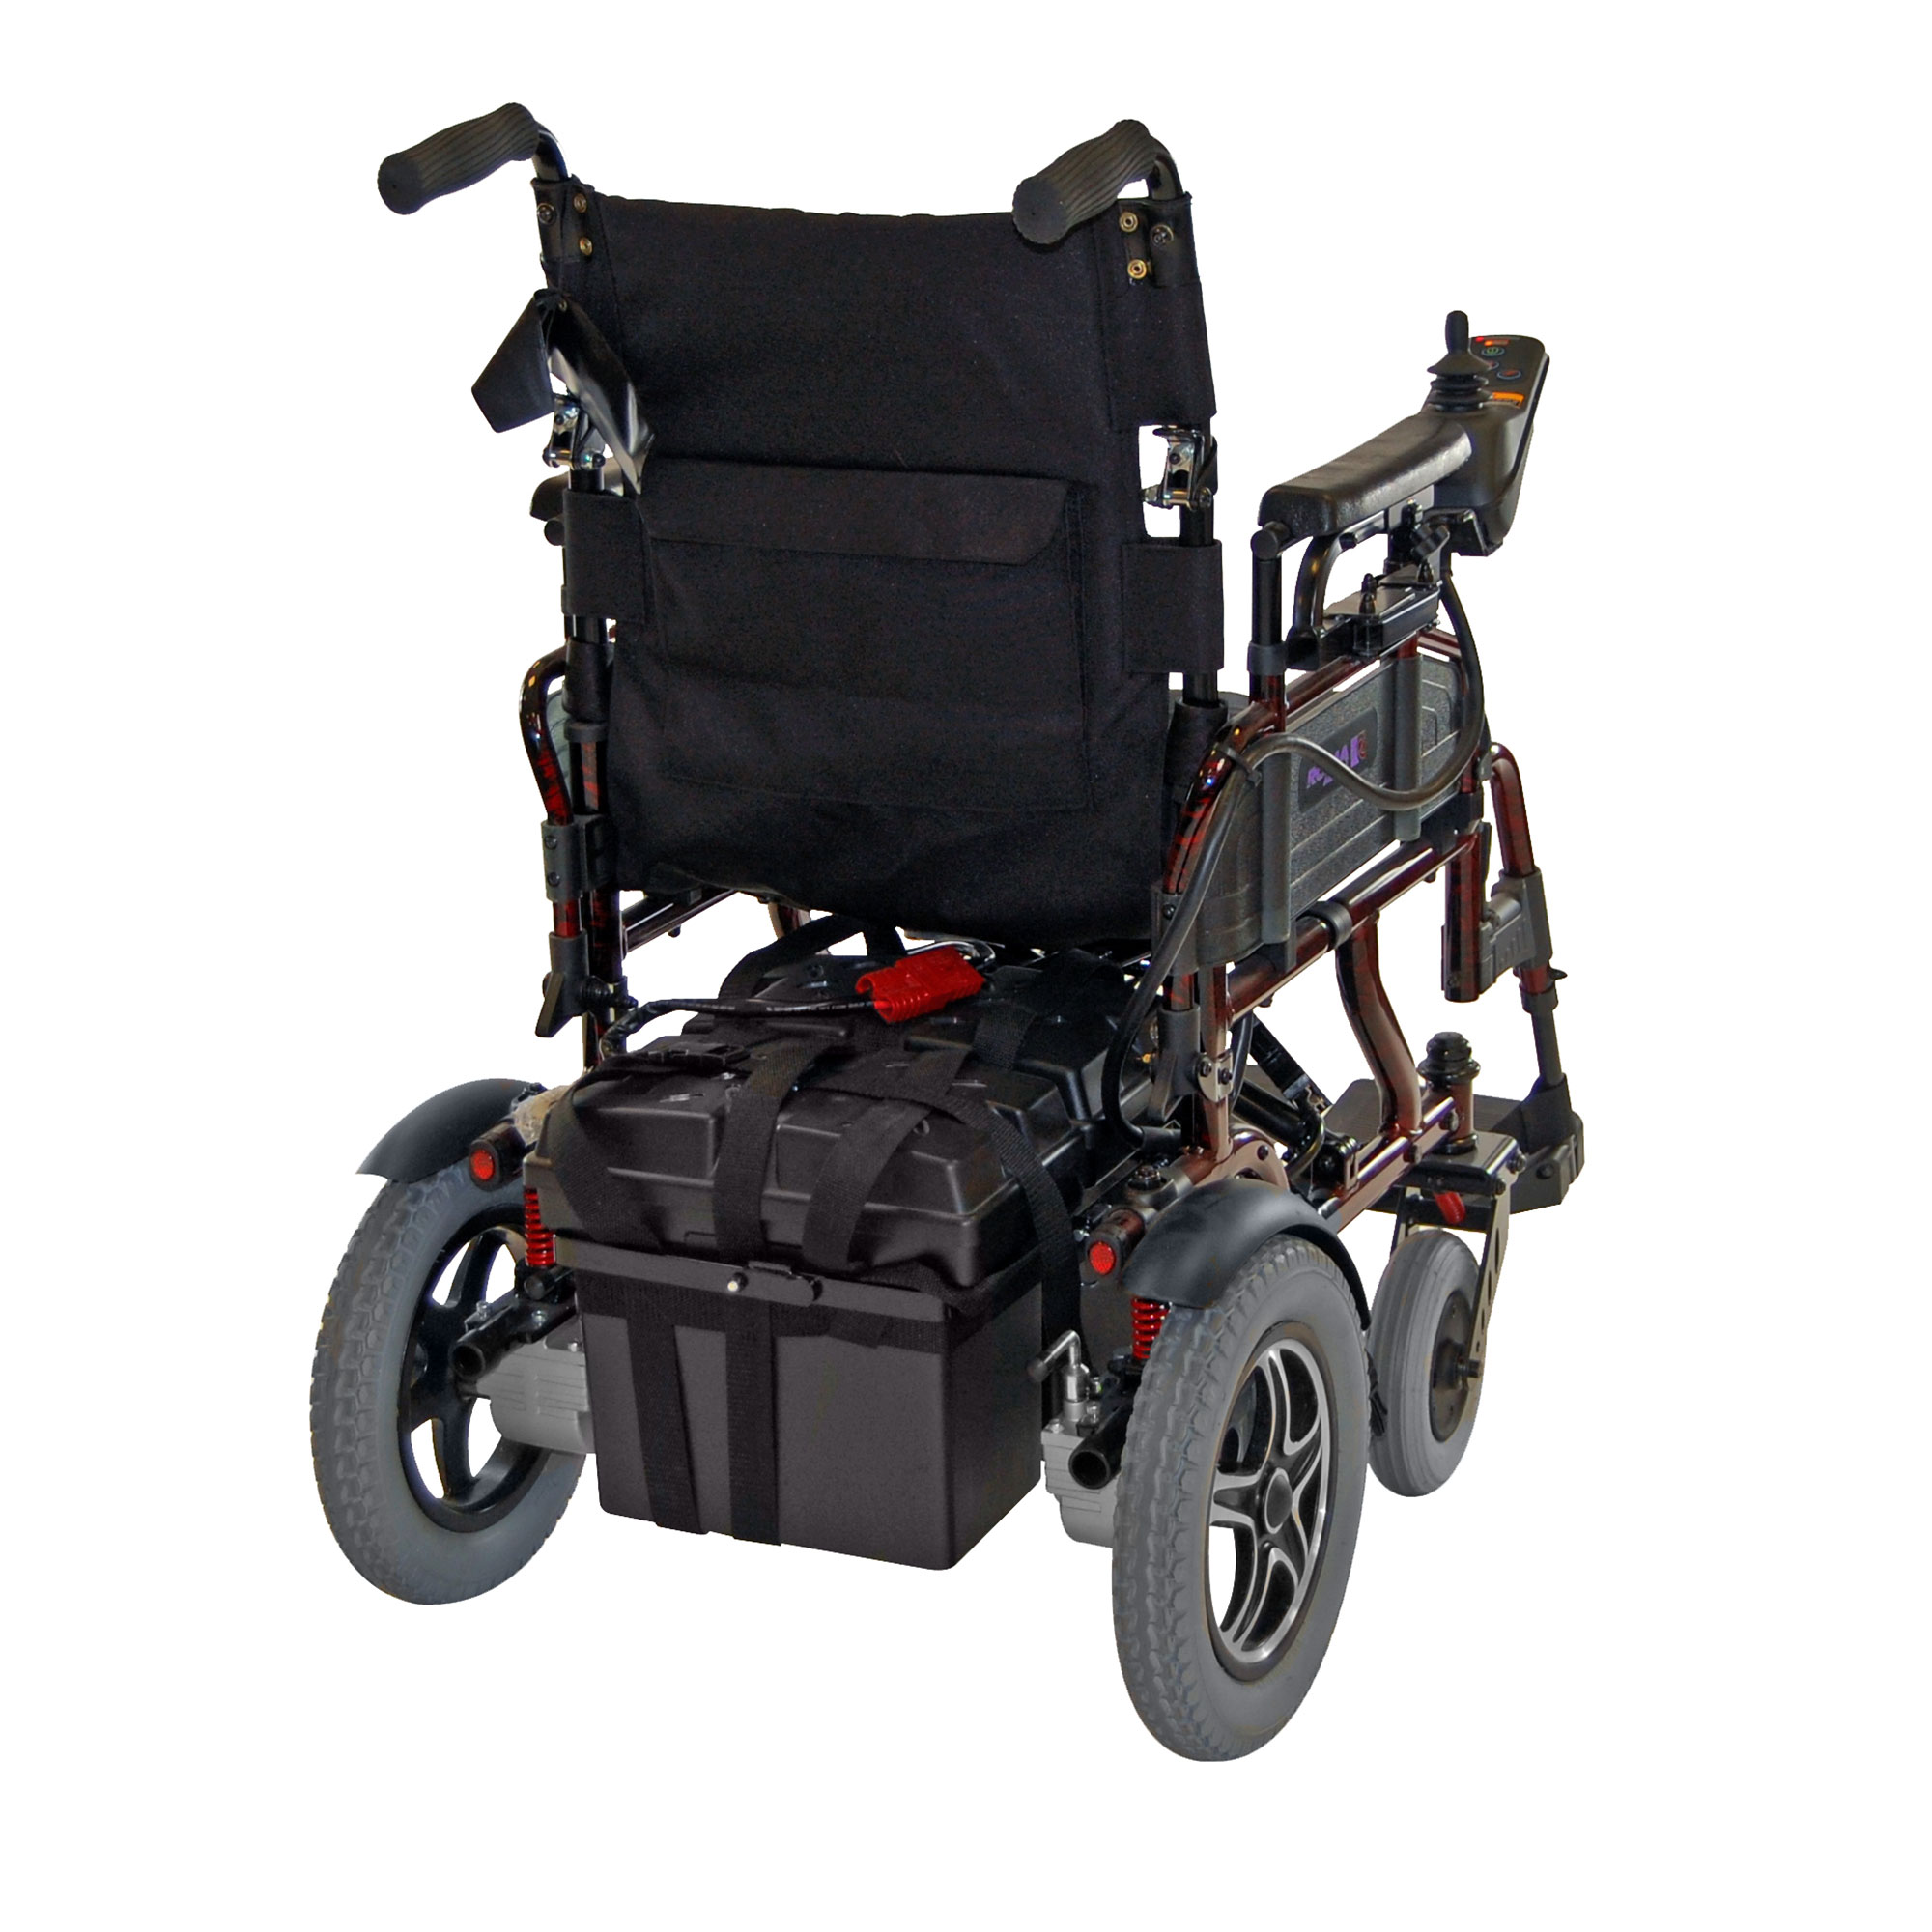 wheelchair nhs red leather side chair roma sirocco power medical